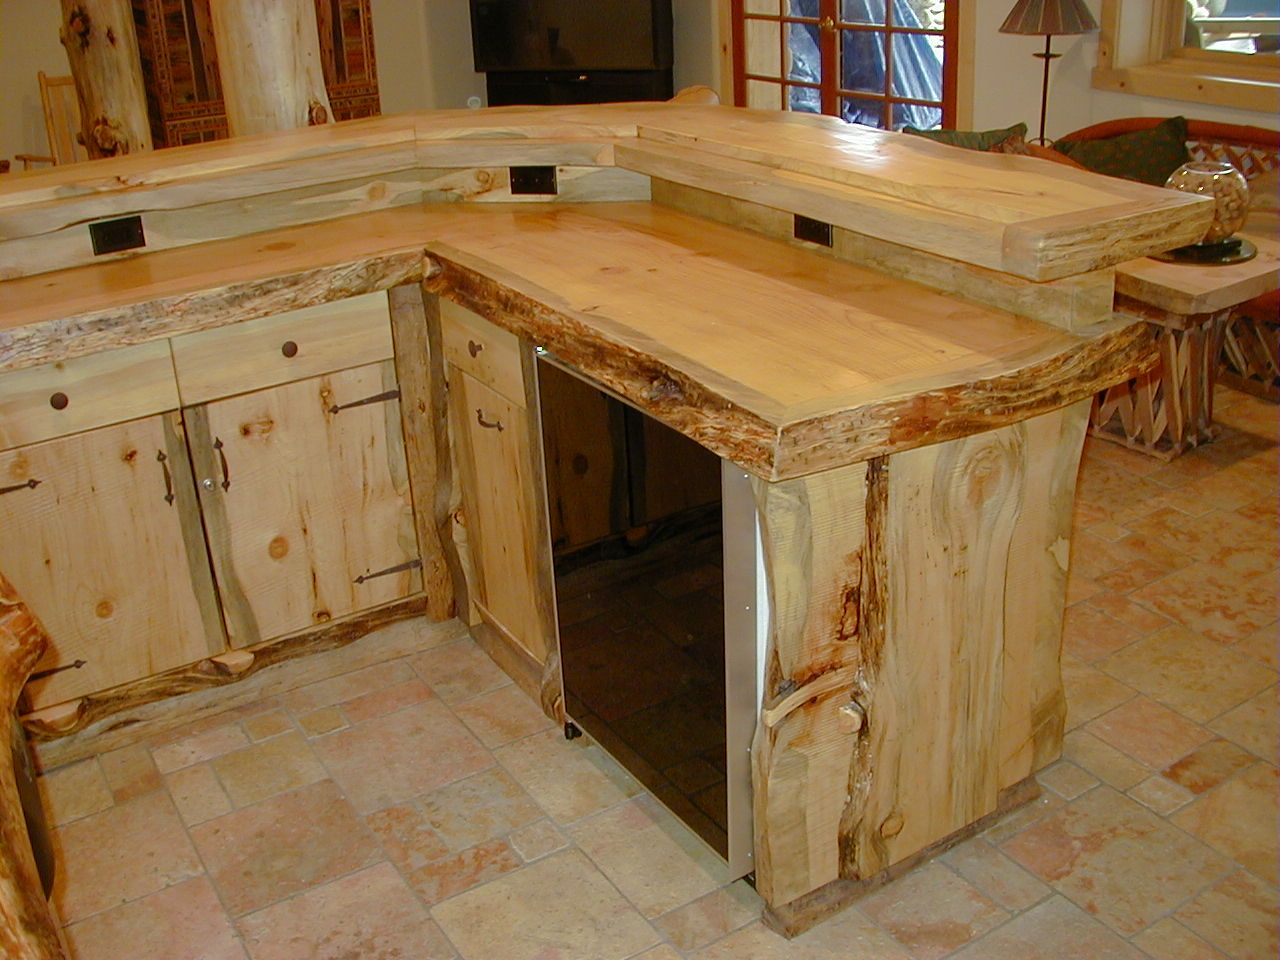 Attractive Counter And Cabinets